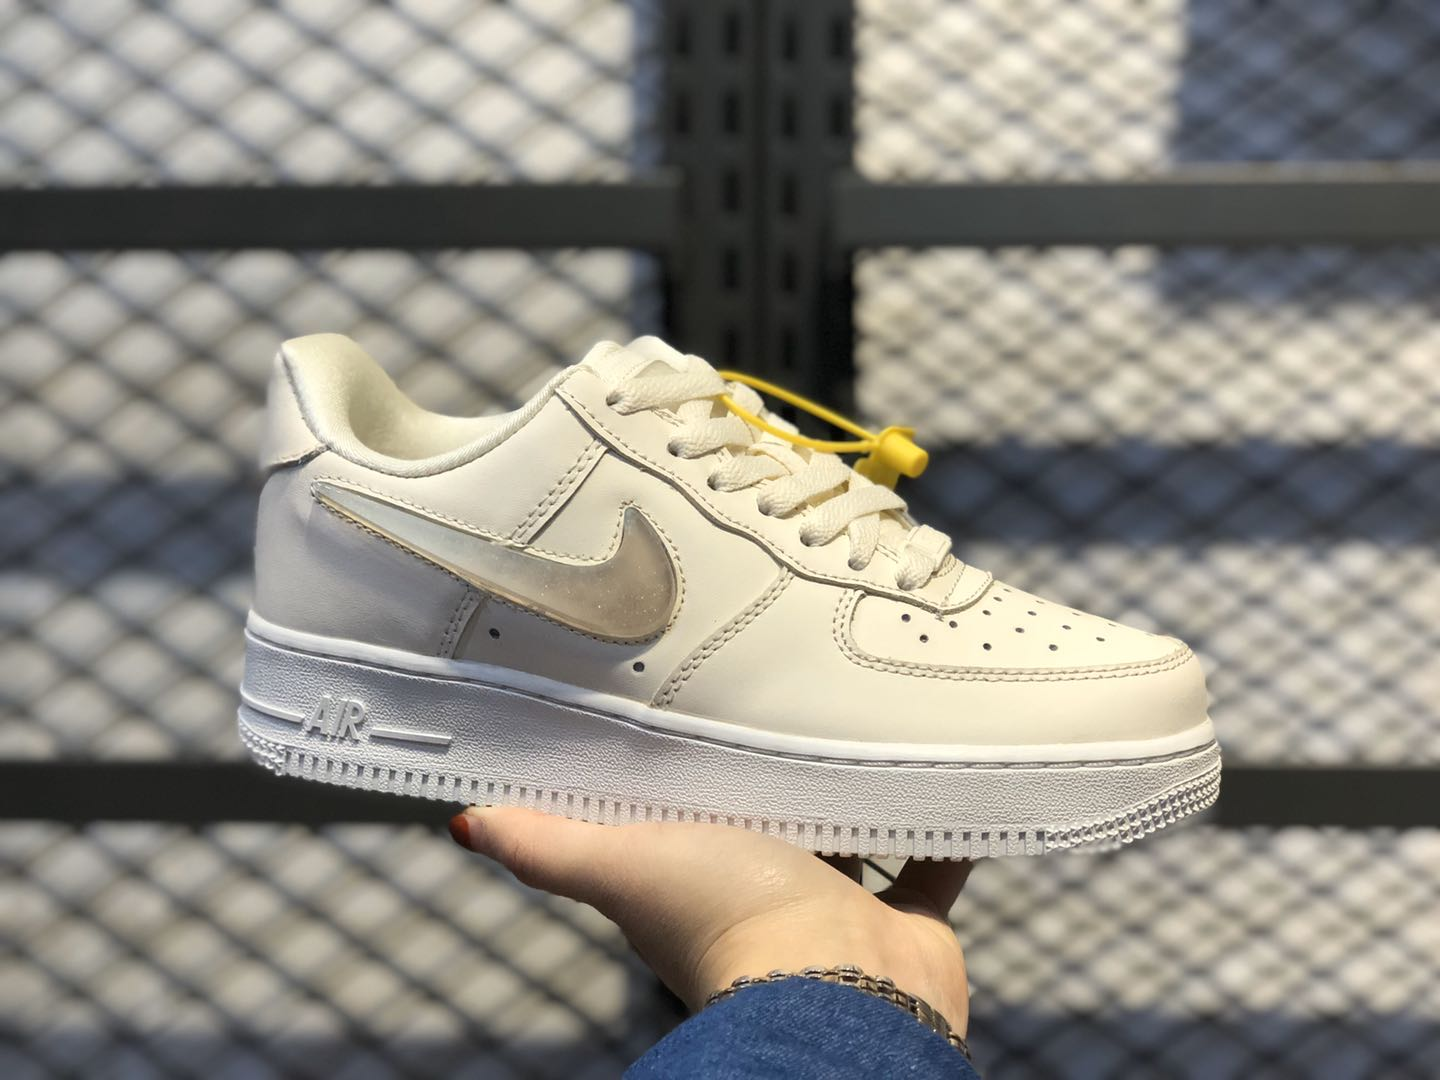 """Nike Air Force 1 Wmns """"Jelly Puff"""" Pale Ivory/Summit White-Guava Ice AH6827-100"""